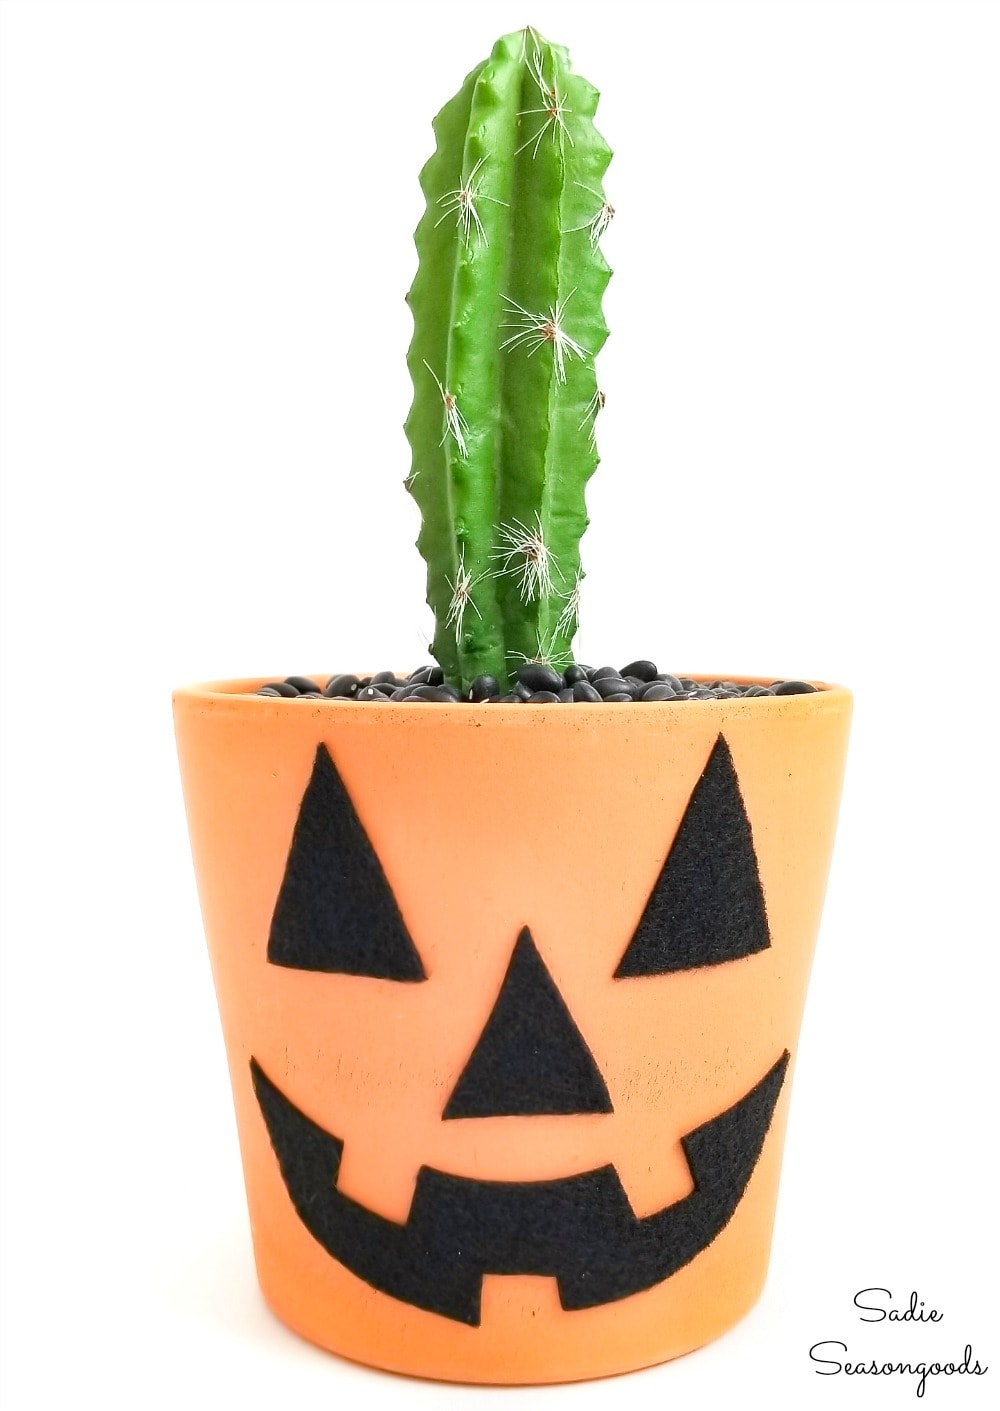 Terracotta jack o lantern with a cactus for a stem